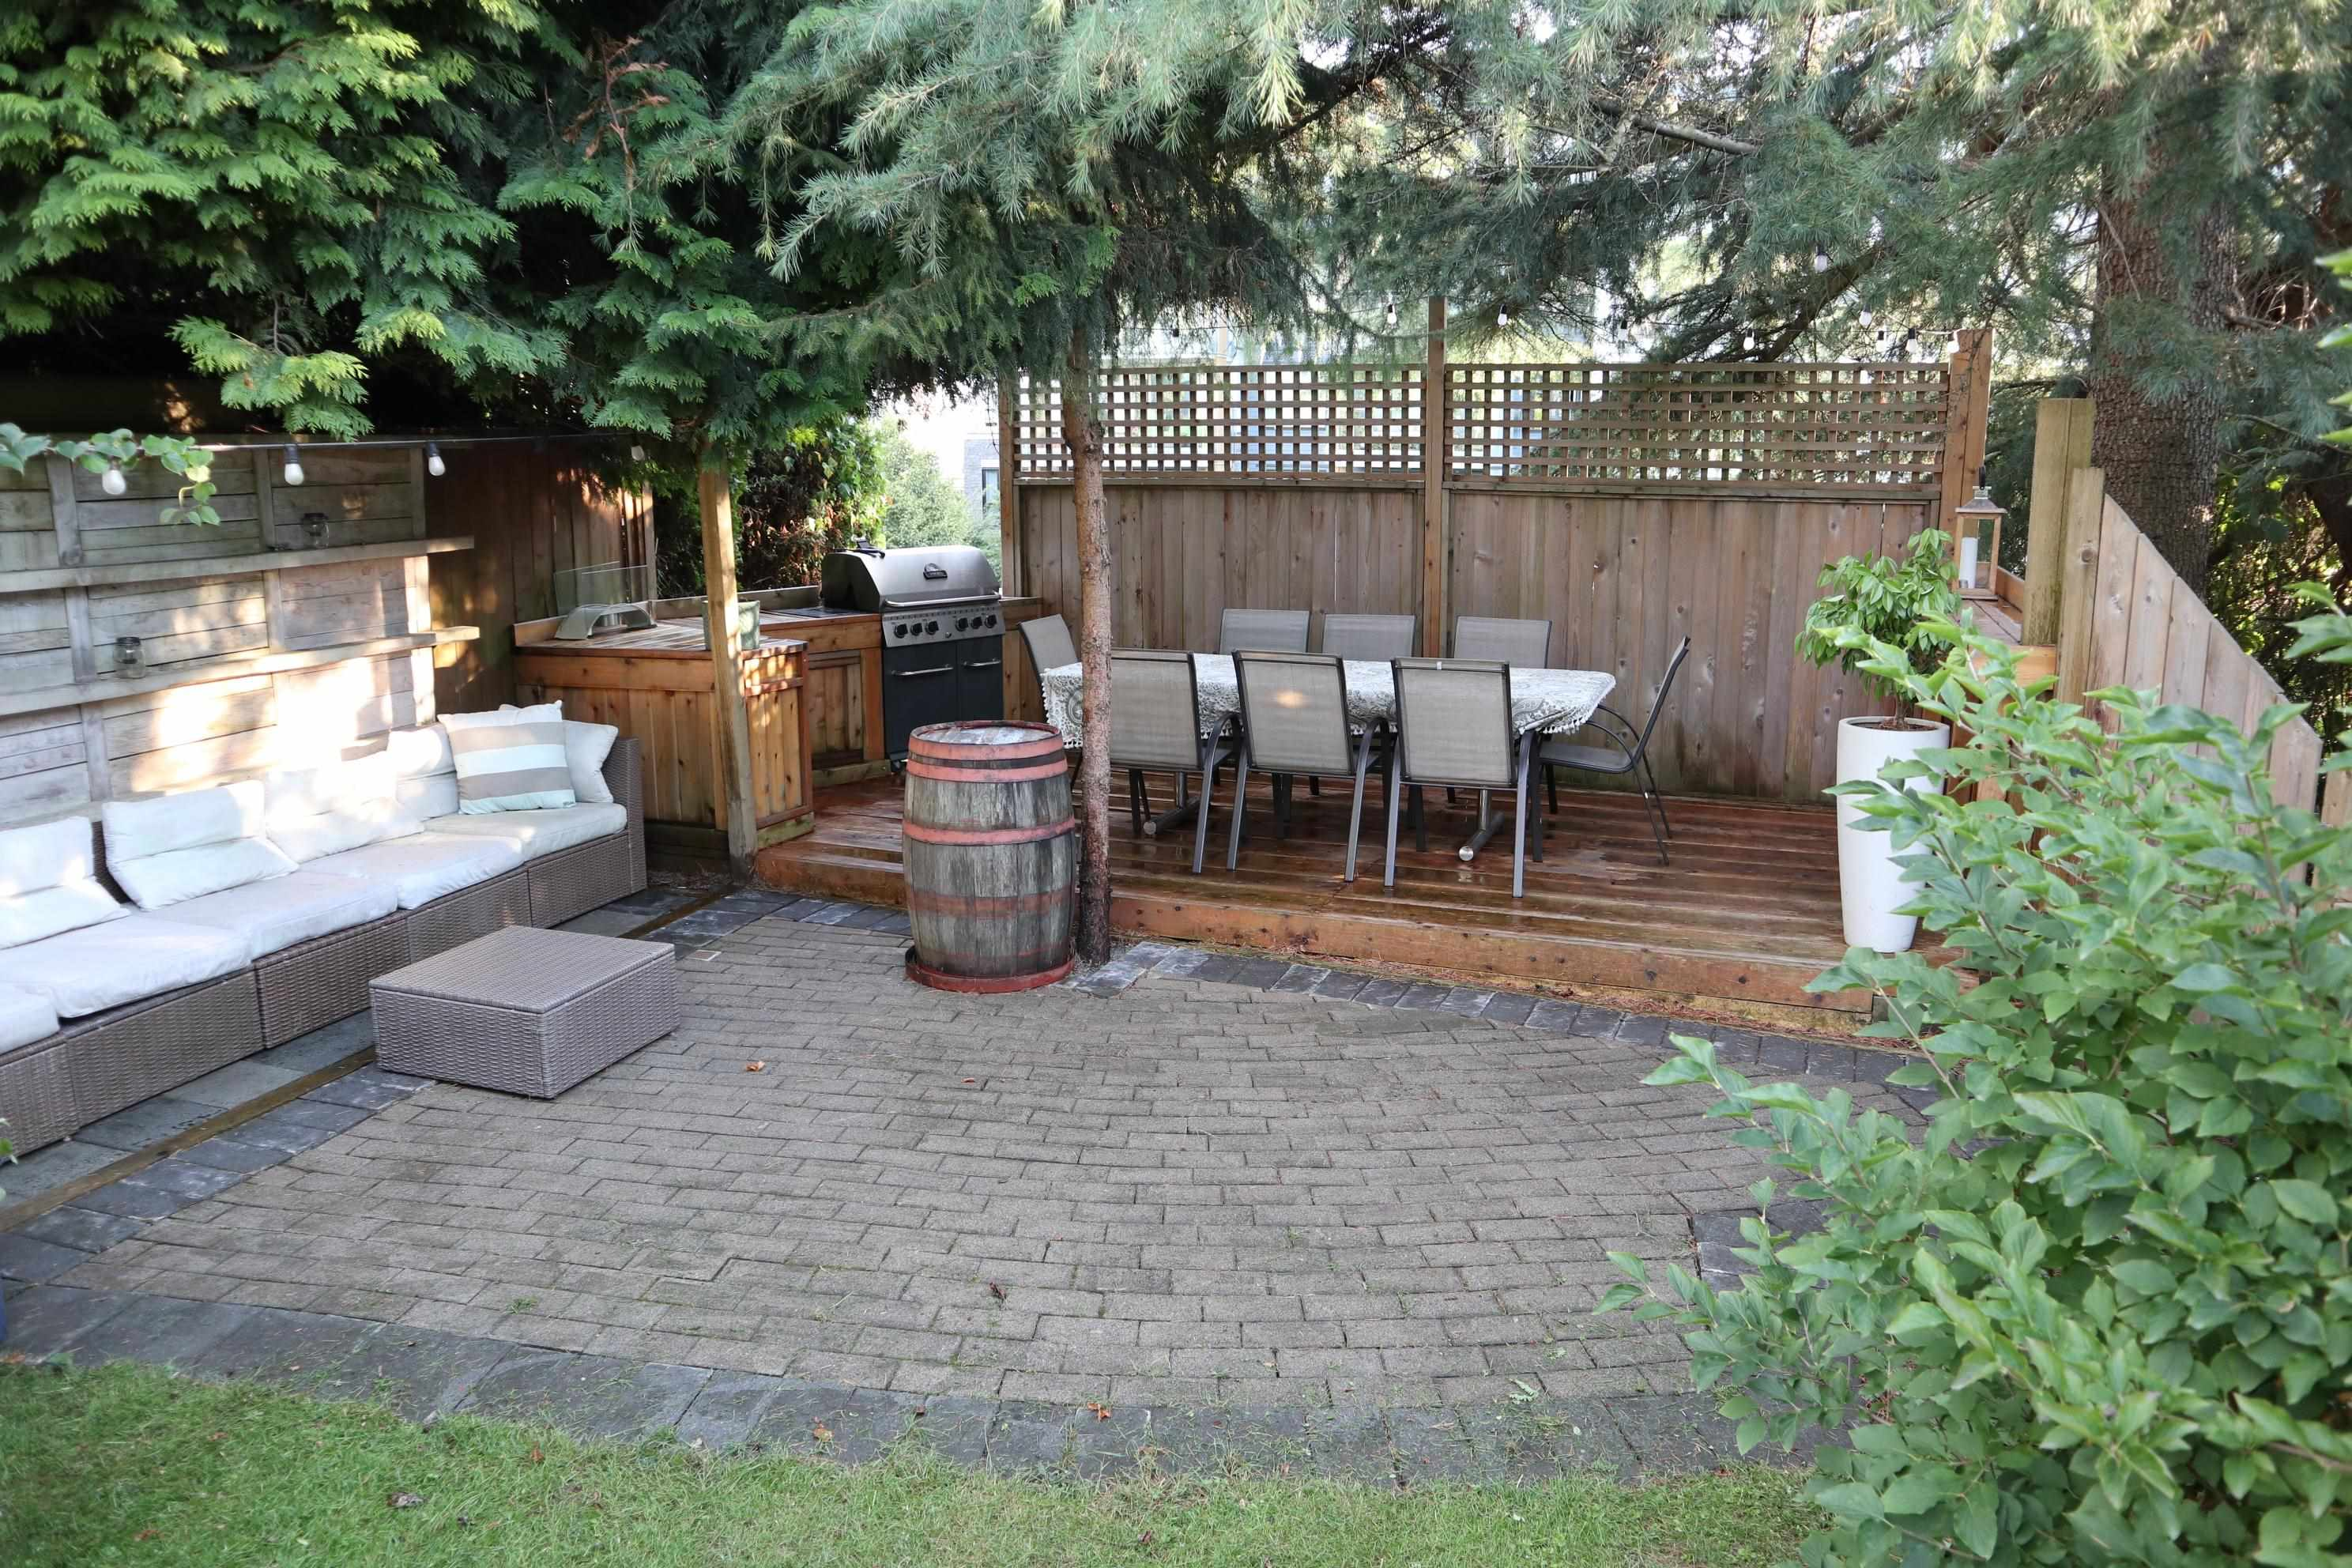 224 E 3RD STREET - Lower Lonsdale House/Single Family for sale, 2 Bedrooms (R2622022) - #3